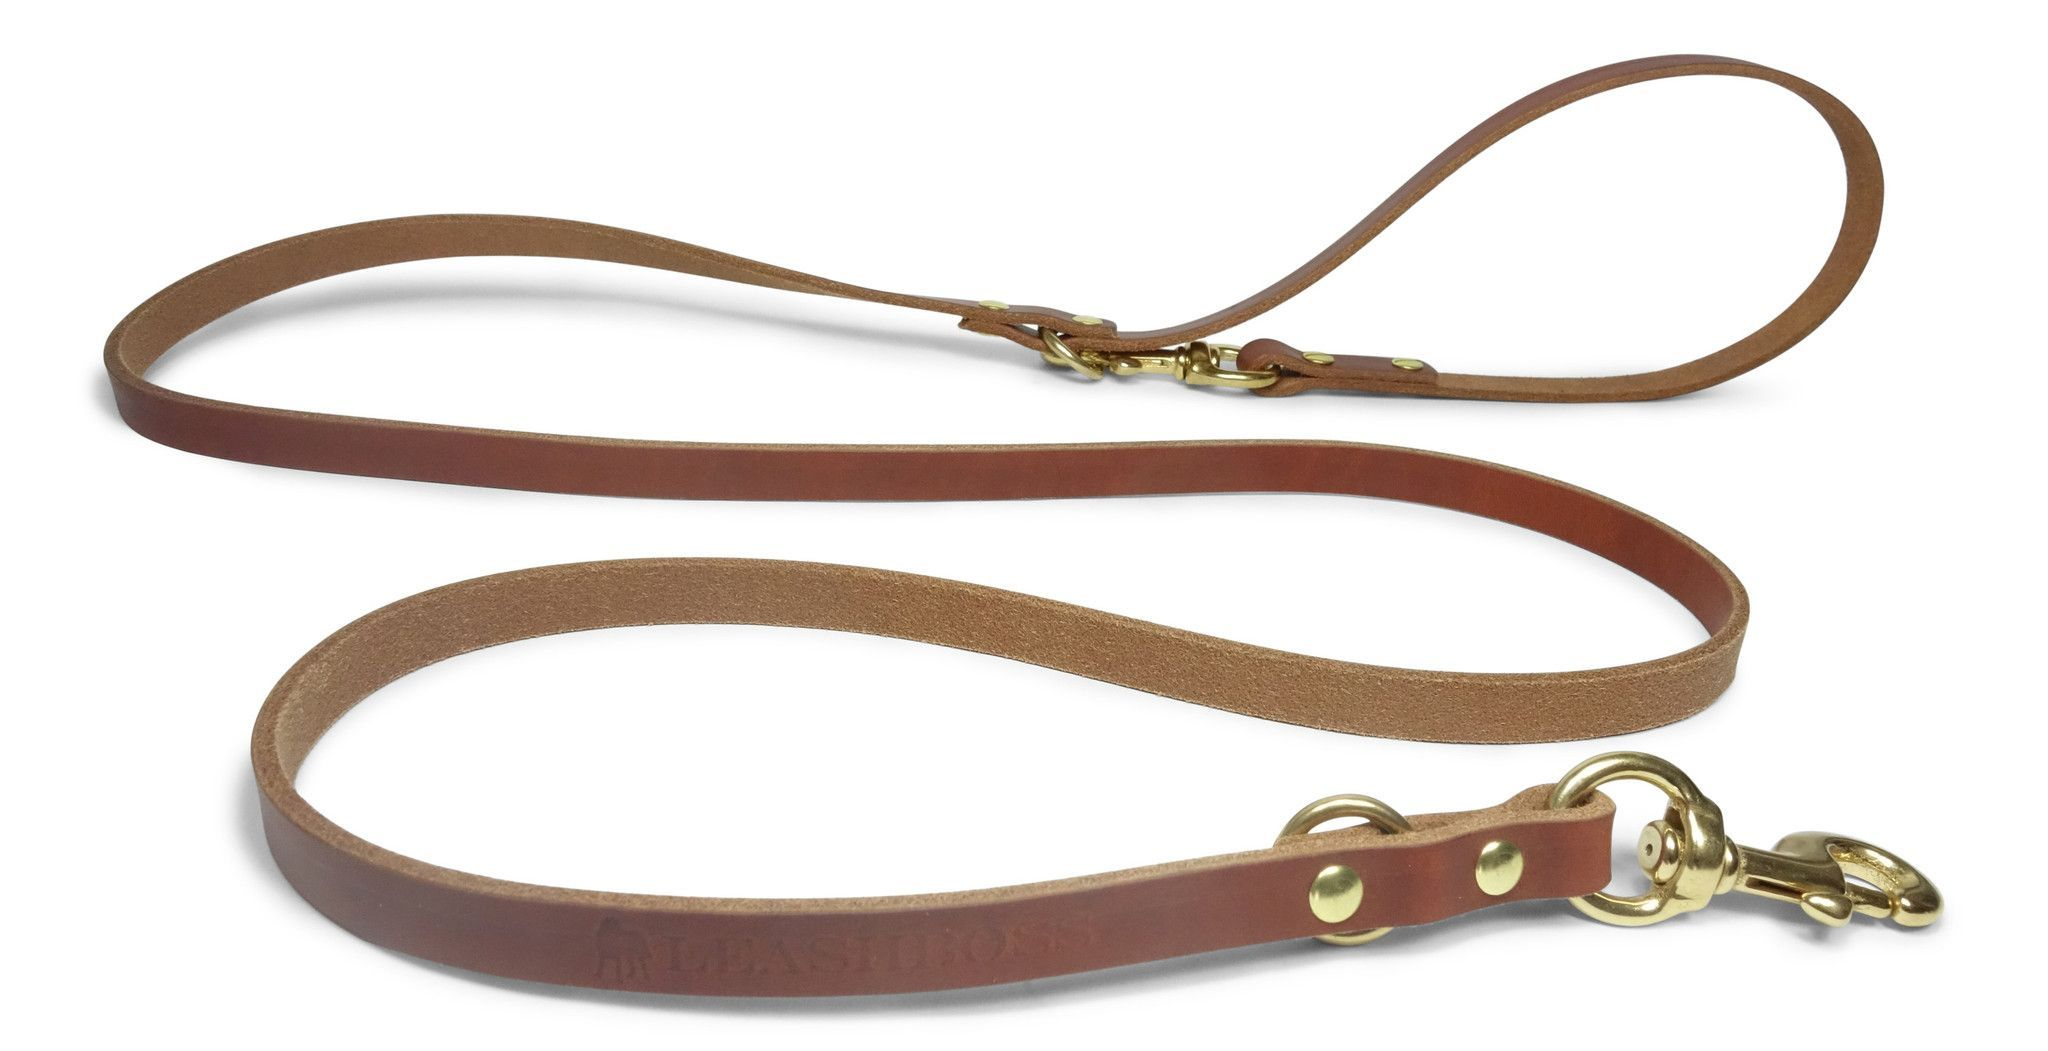 Multi Function Leather Dog Leash for Service Dogs, K9 Training, or Everyday Use